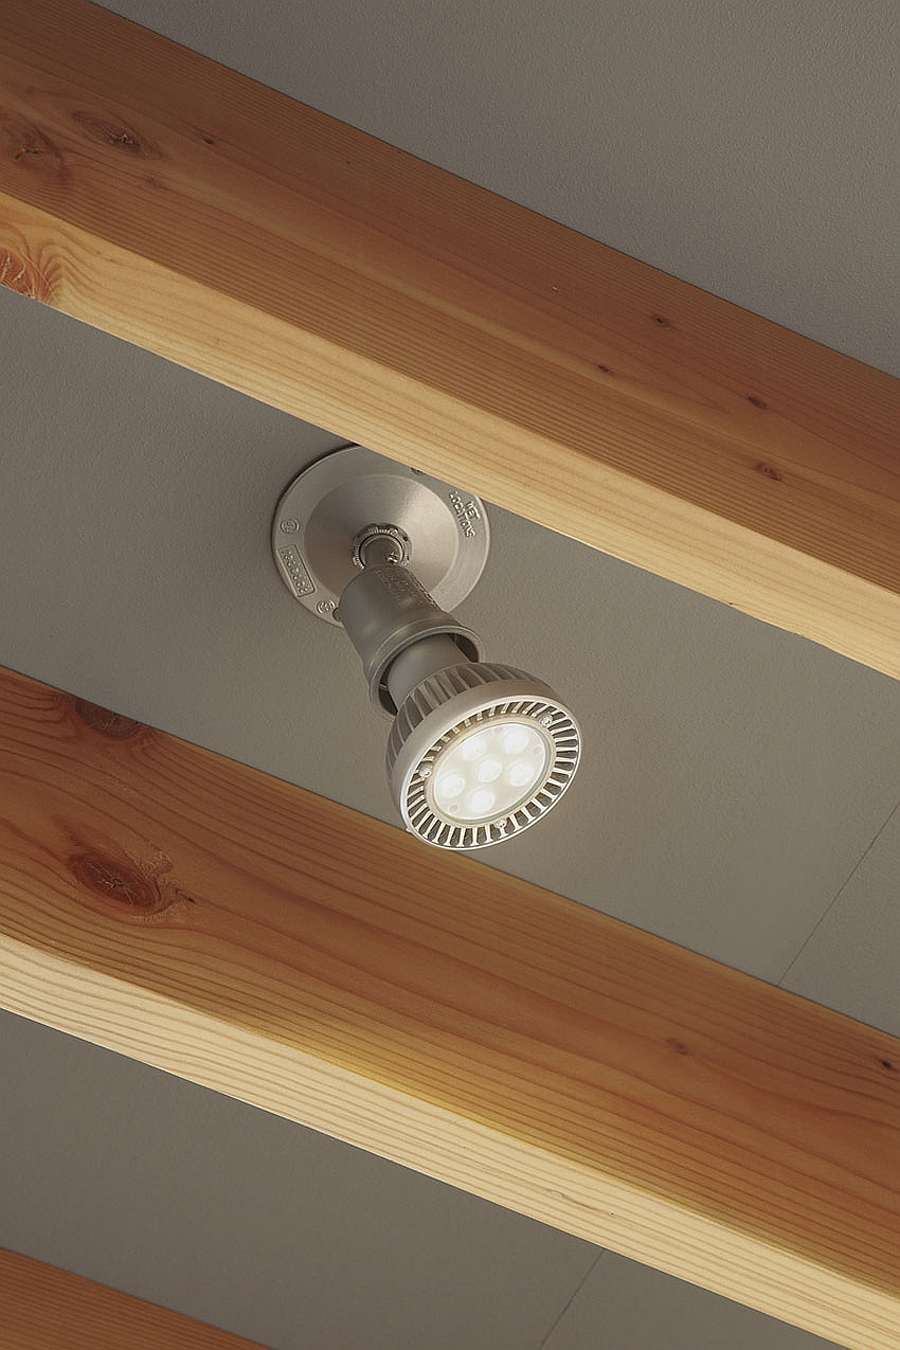 Closer look at the energy-efficinet home lighting installation